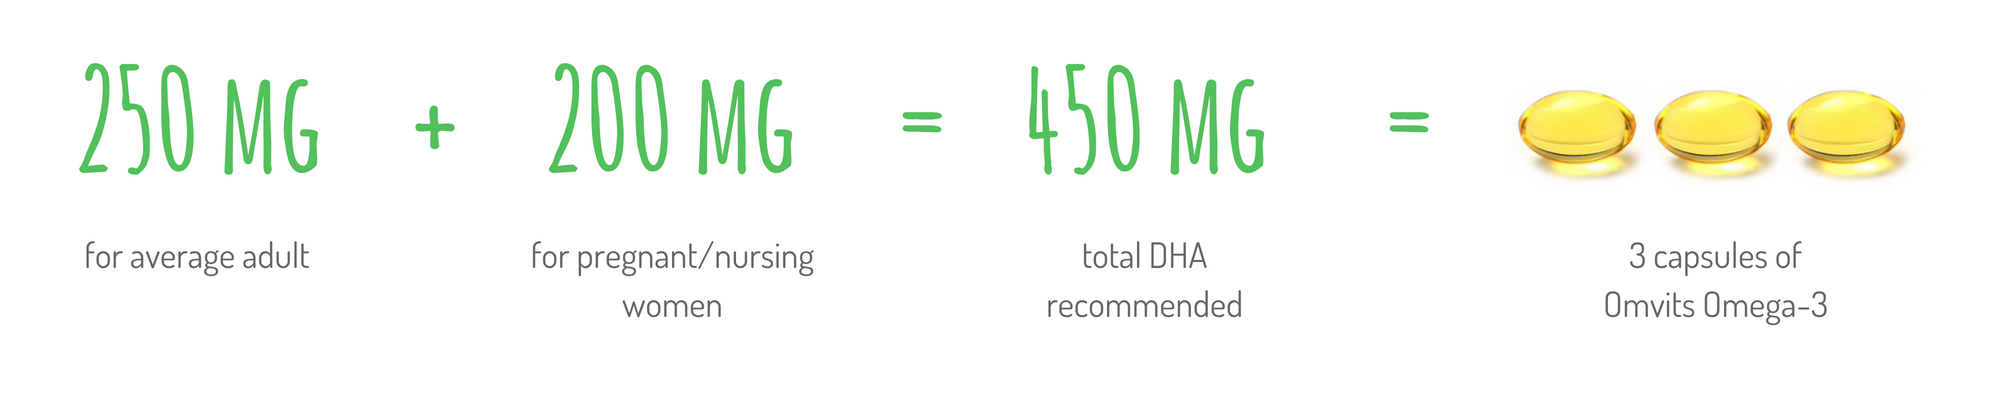 graphic showing how much omega-3 dha is required during pregnancy